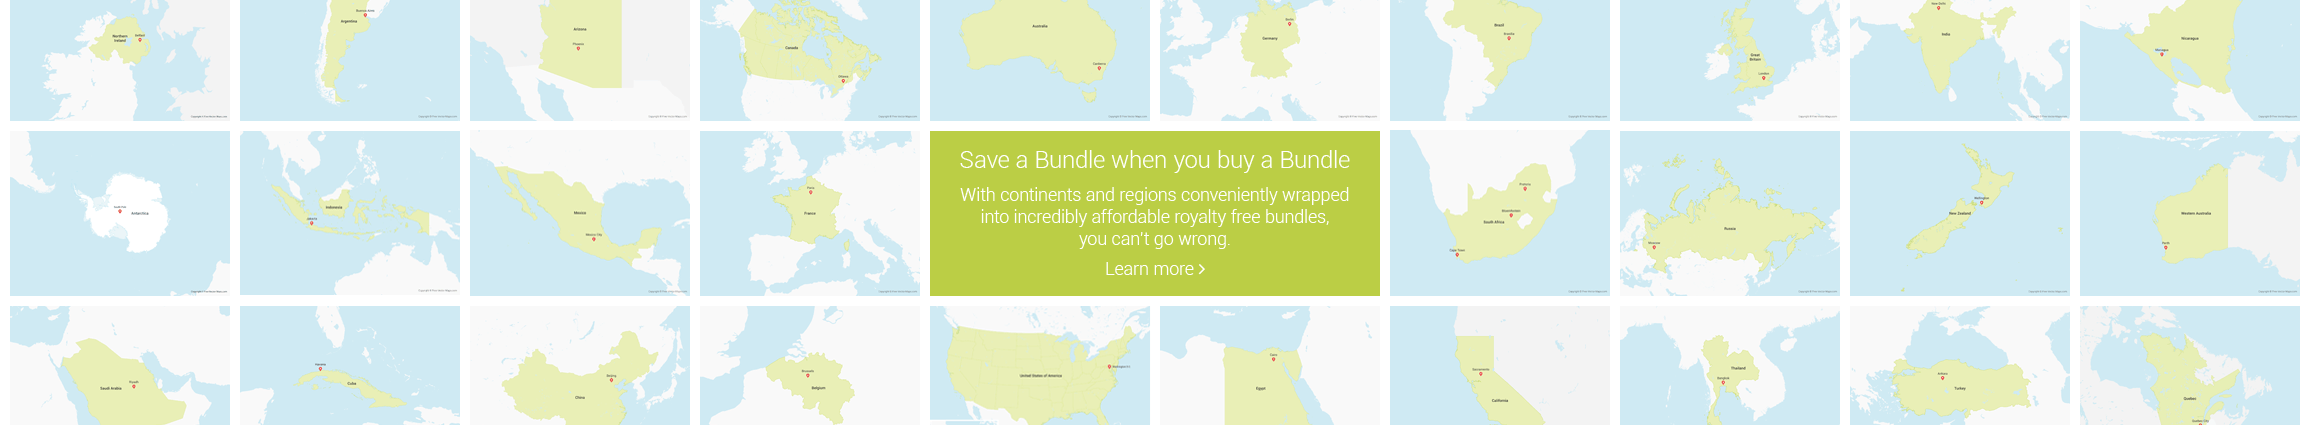 Save a Bundle when you buy a Bundle